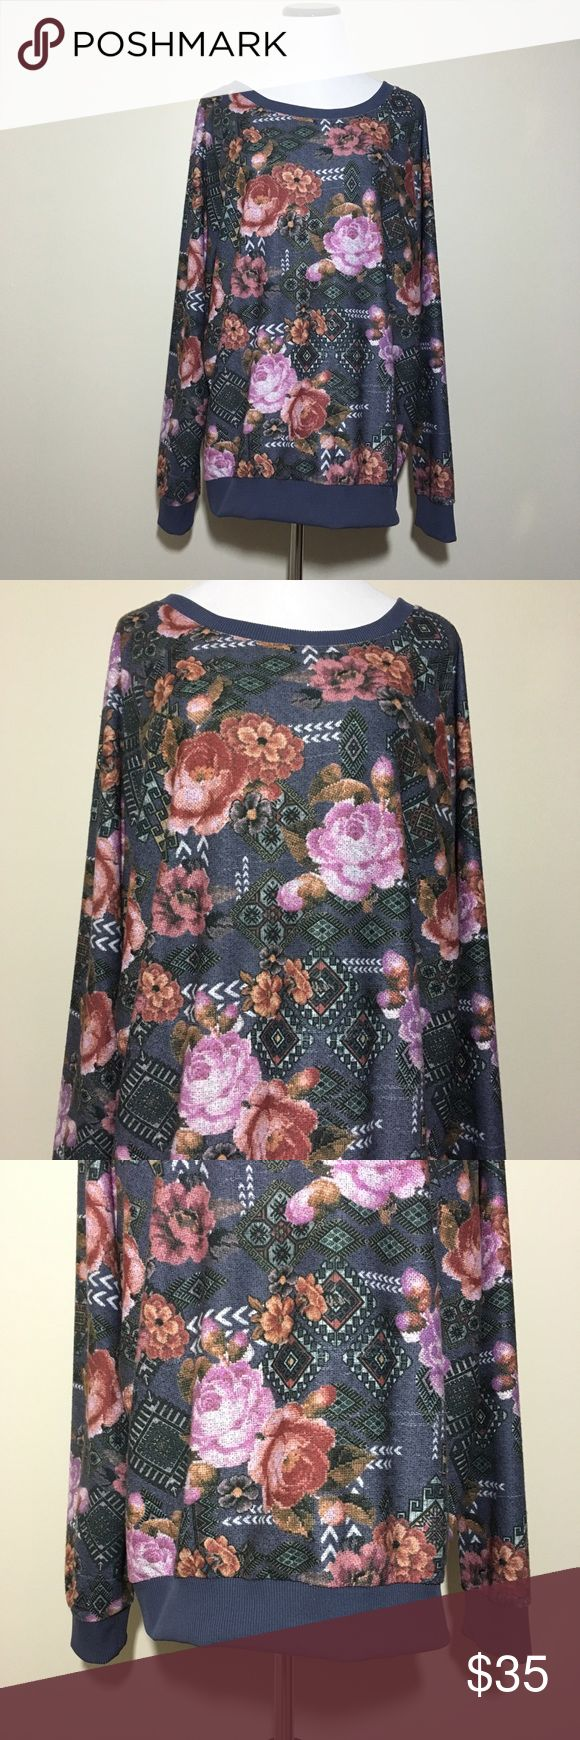 River Island Floral Tapestry Printed Top Floral tapestry printed top by River Island. Slightly textured. Lightweight. 1 small spot of the sleeve (last picture). UK size 18 is equivalent to a US size 14. Please refer to measurements to determine fit. Great condition. No rips or stains.  Measurements (approximate, taken laying flat): Underarm to underarm: 25 inches Length: 28 inches  Material: 100% polyester  ❌No trades❌ River Island Tops